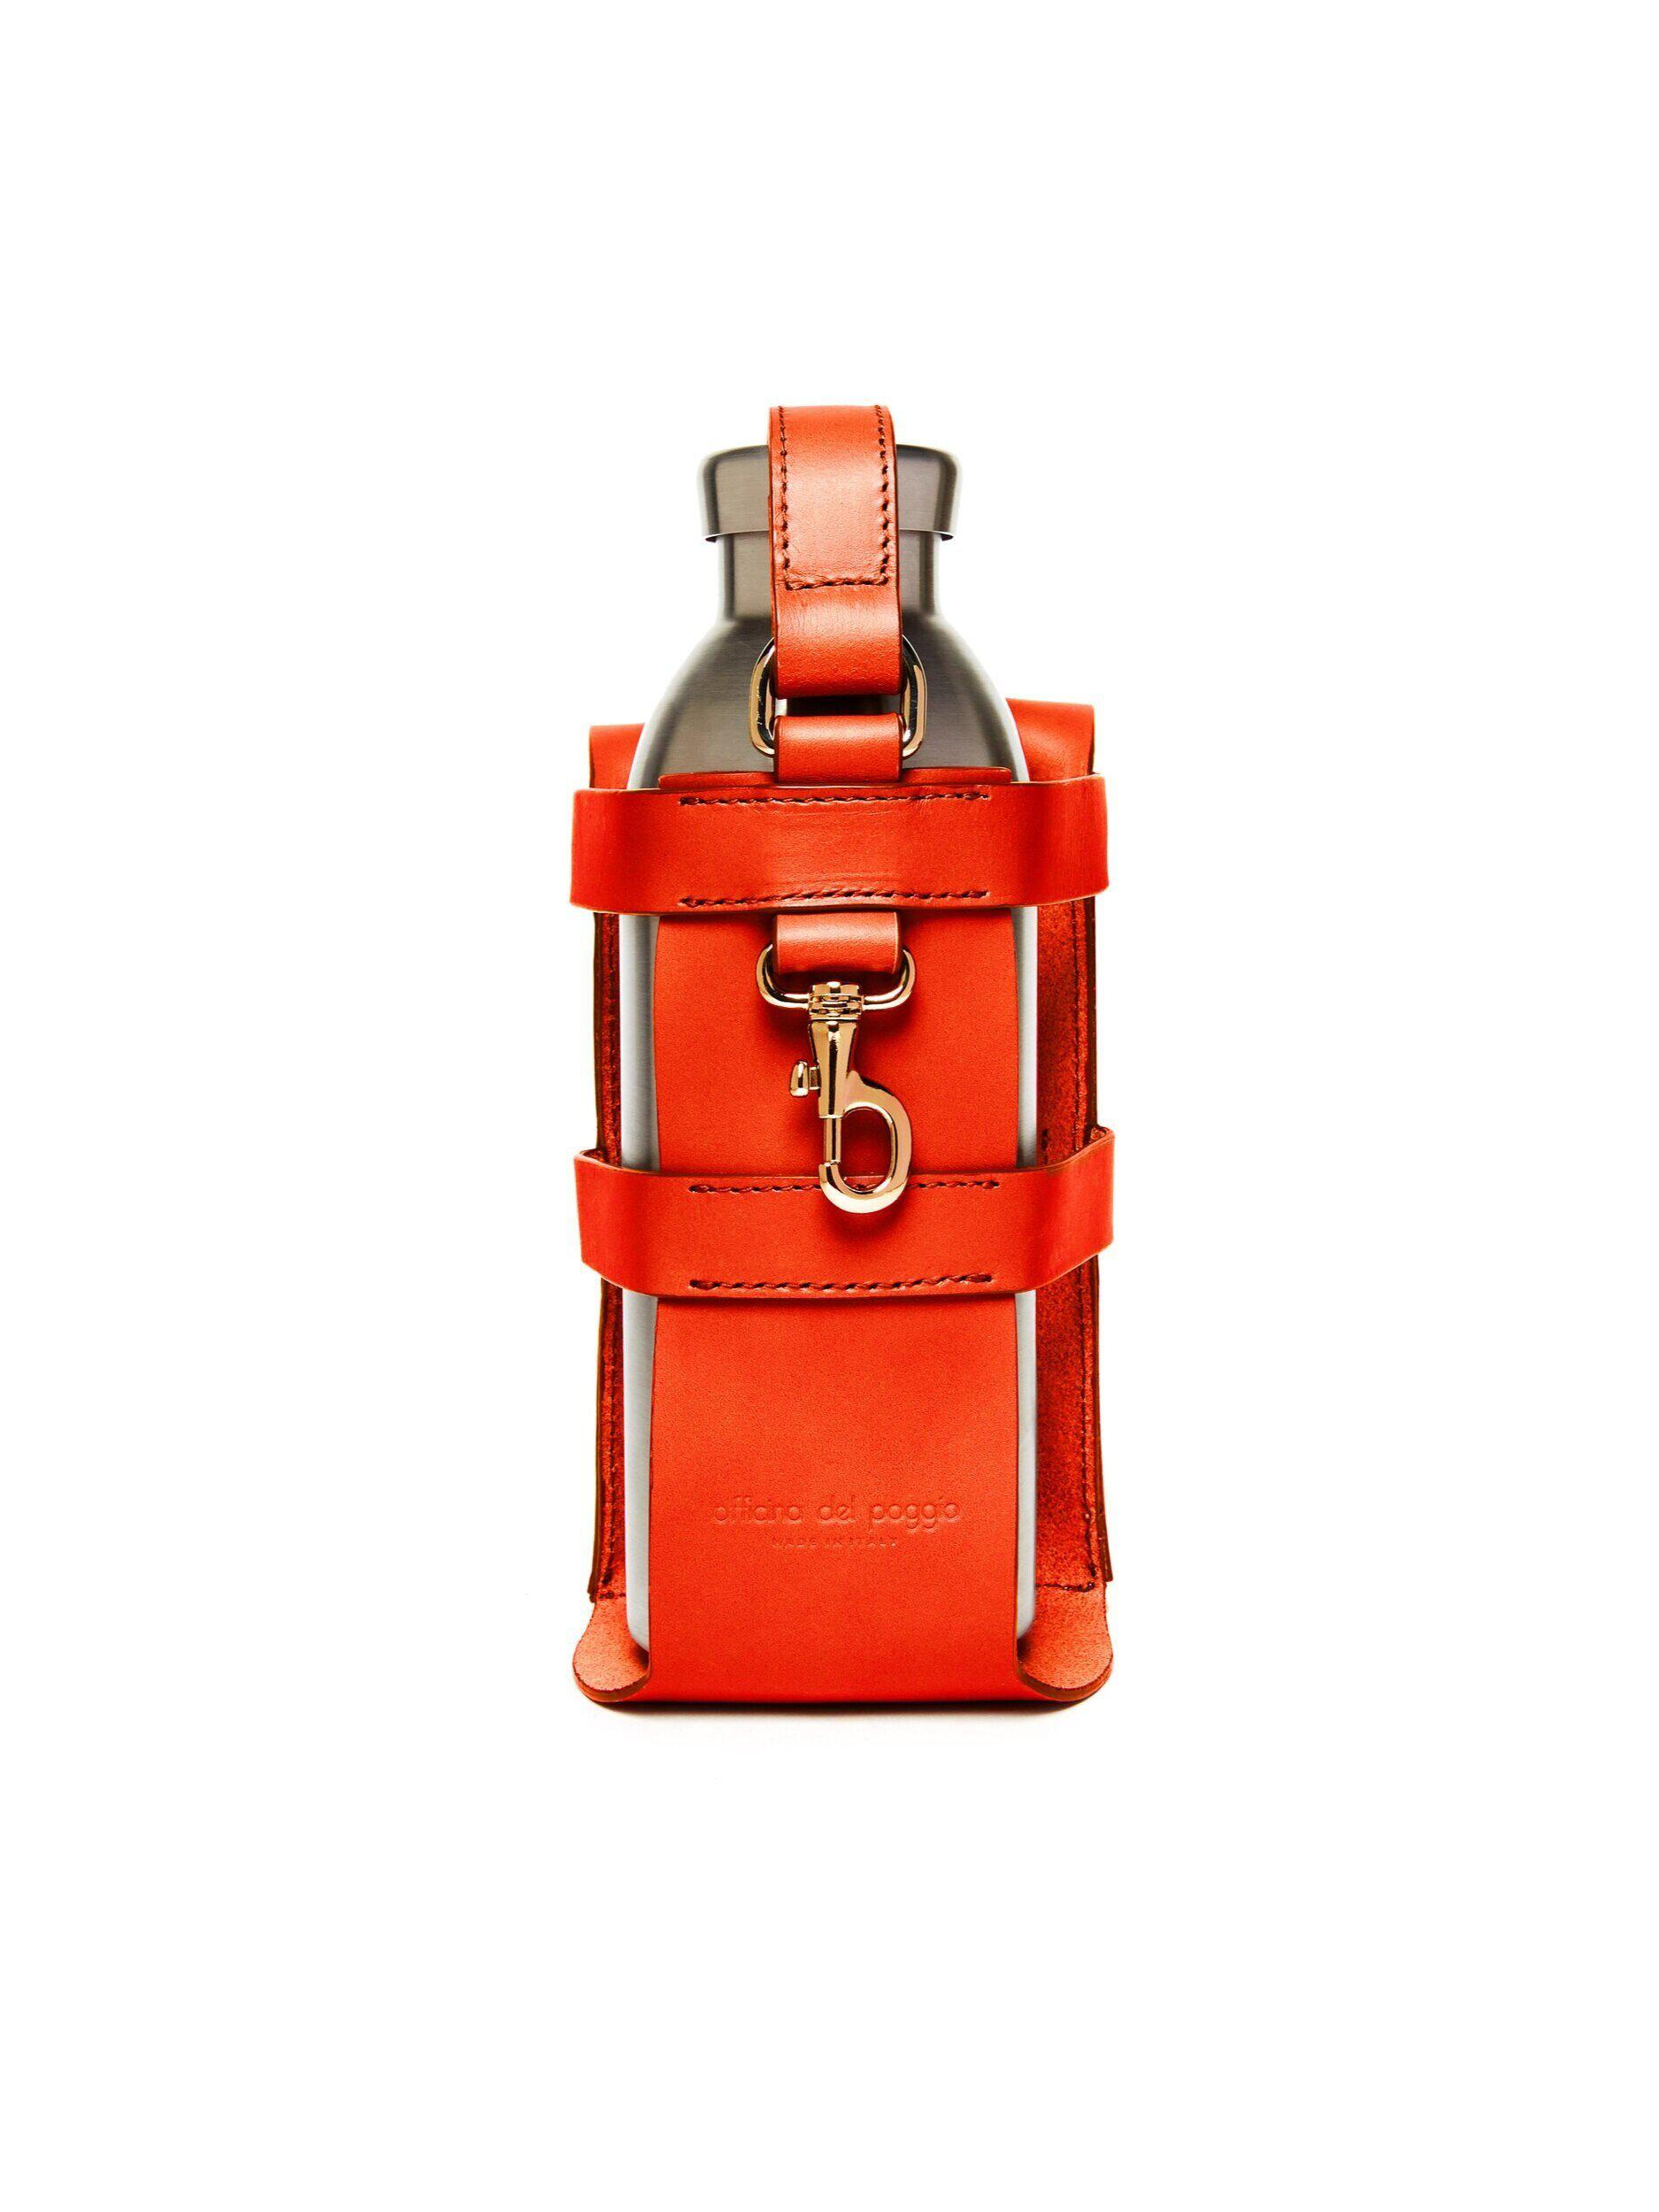 Bottle Bag with Bottle - Fiamma Leather 2